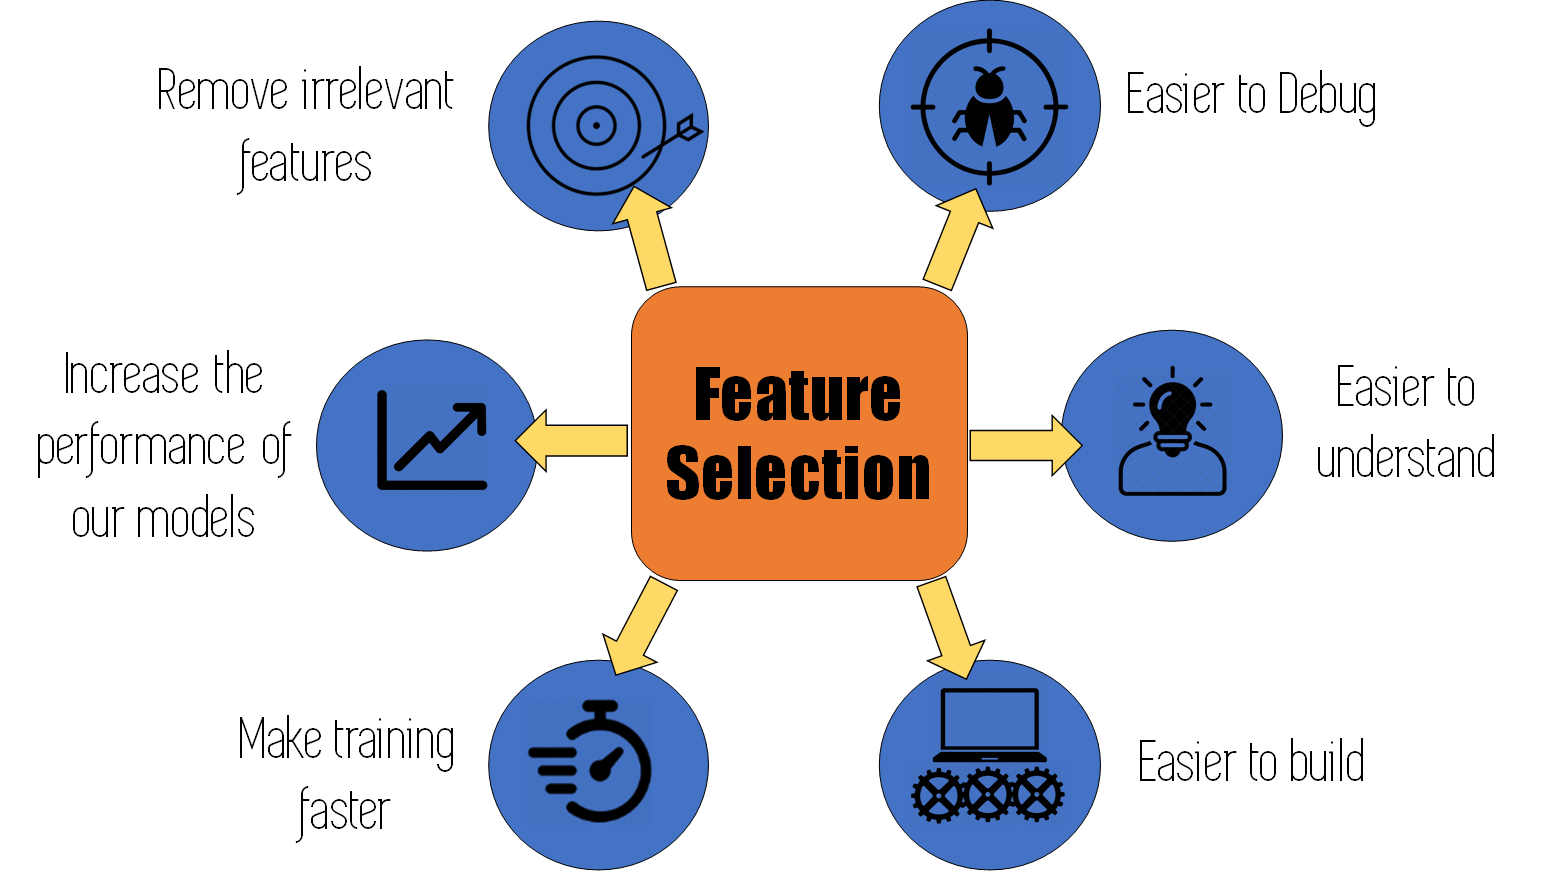 Graphic shows various benefits to prioritize in the feature selection process.